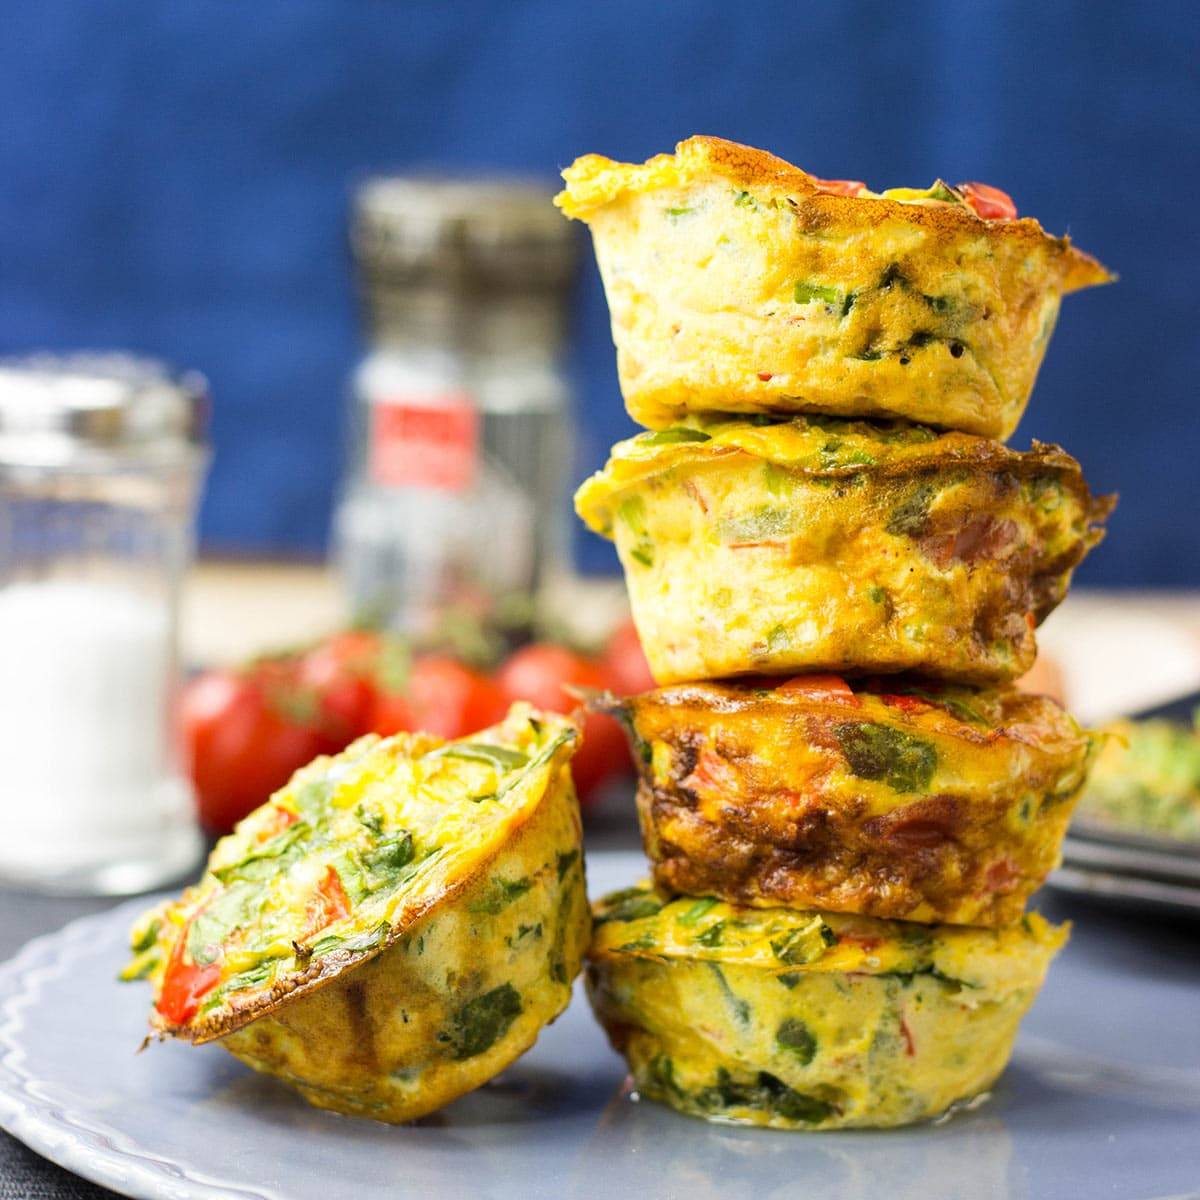 18 vegetarian breakfast ideas the proper way to start the day 18 vegetarian breakfast ideas the proper way to start the day hurrythefoodup fandeluxe Image collections